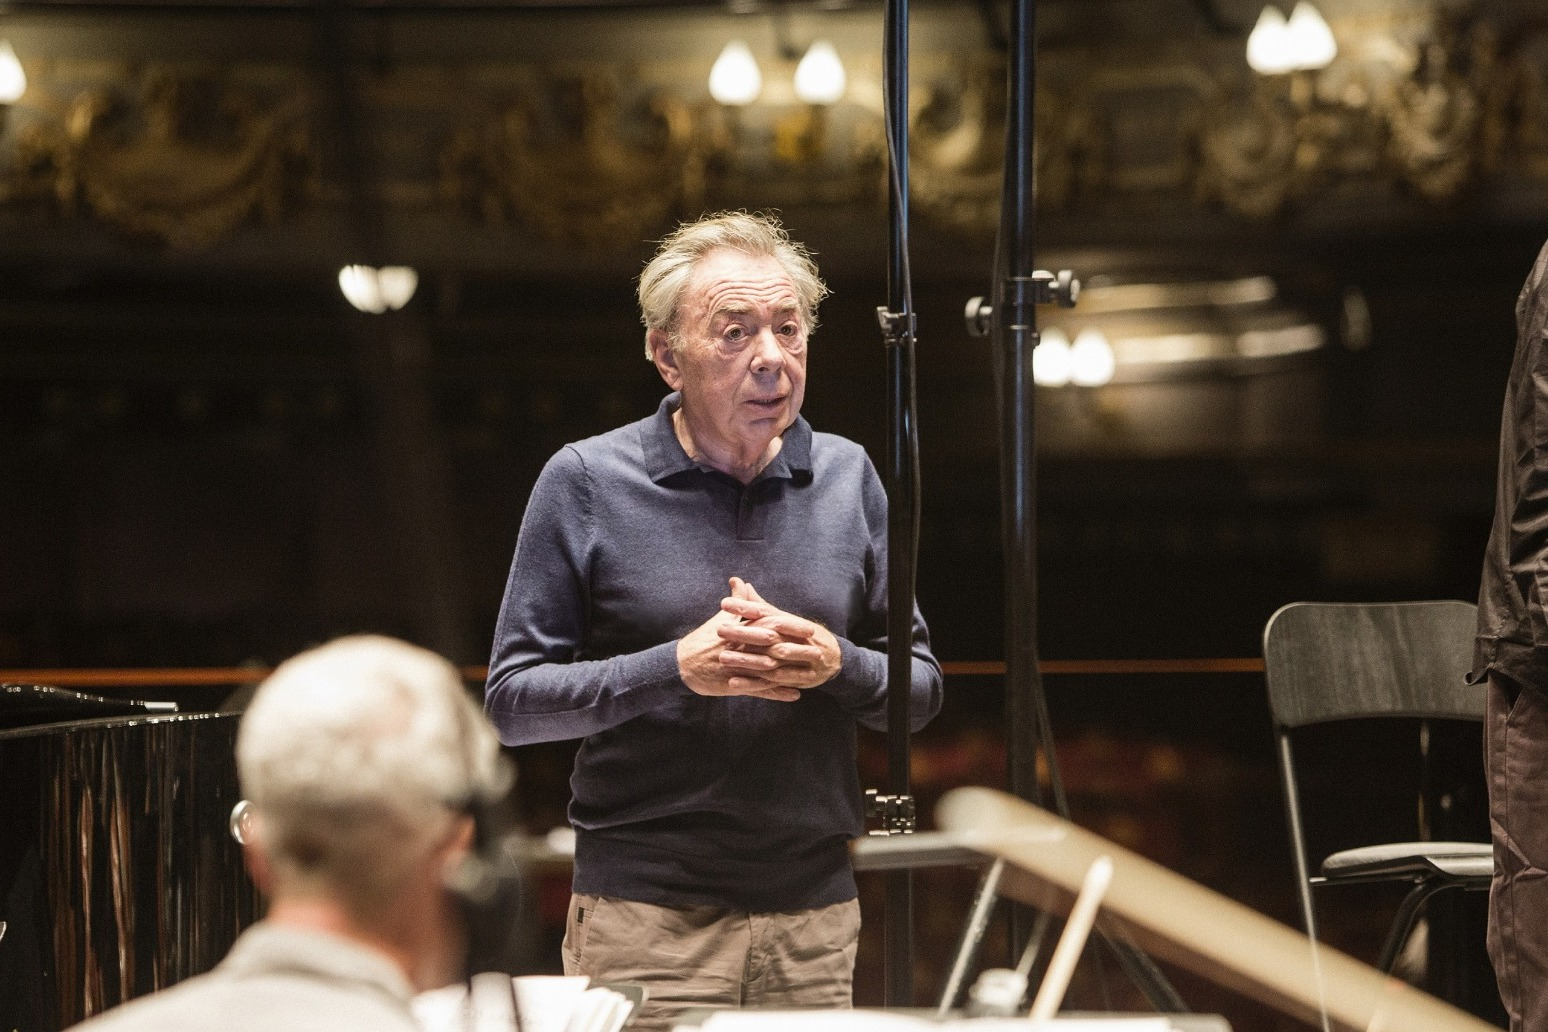 Lord Lloyd-Webber says he will risk arrest in order to fully reopen his theatres